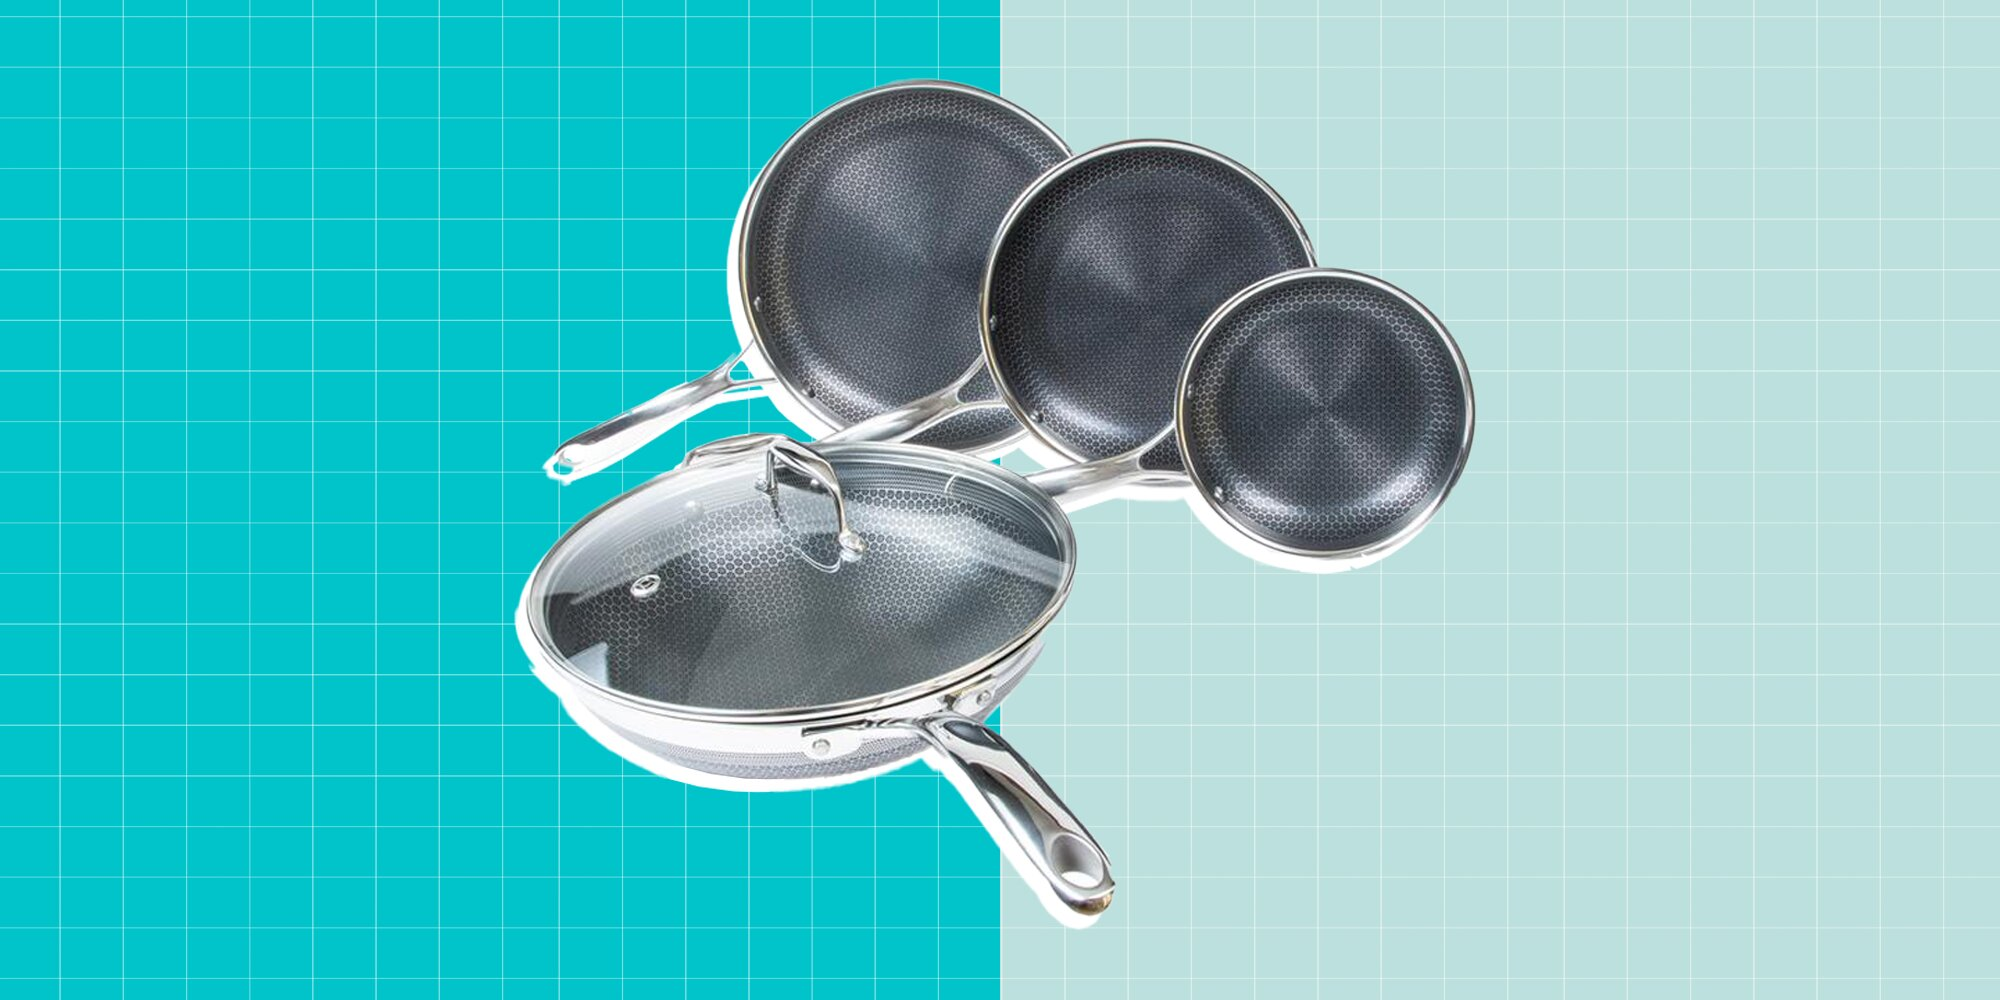 This Cookware Is a True Hybrid Between Stainless Steel and Nonstick-and It's on Sale